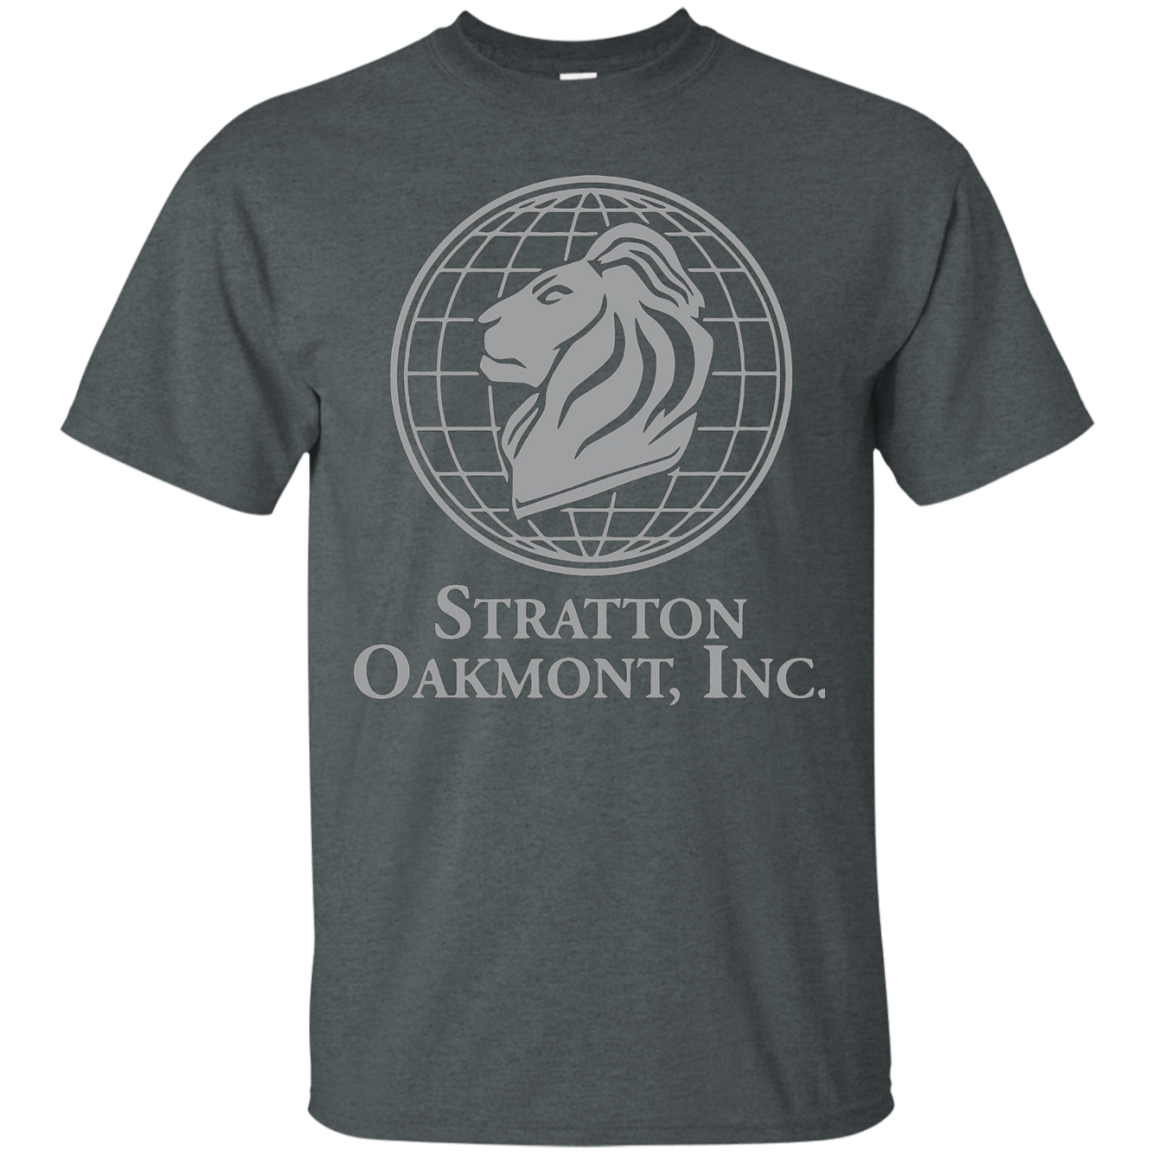 Stratton and Oakmont shirt